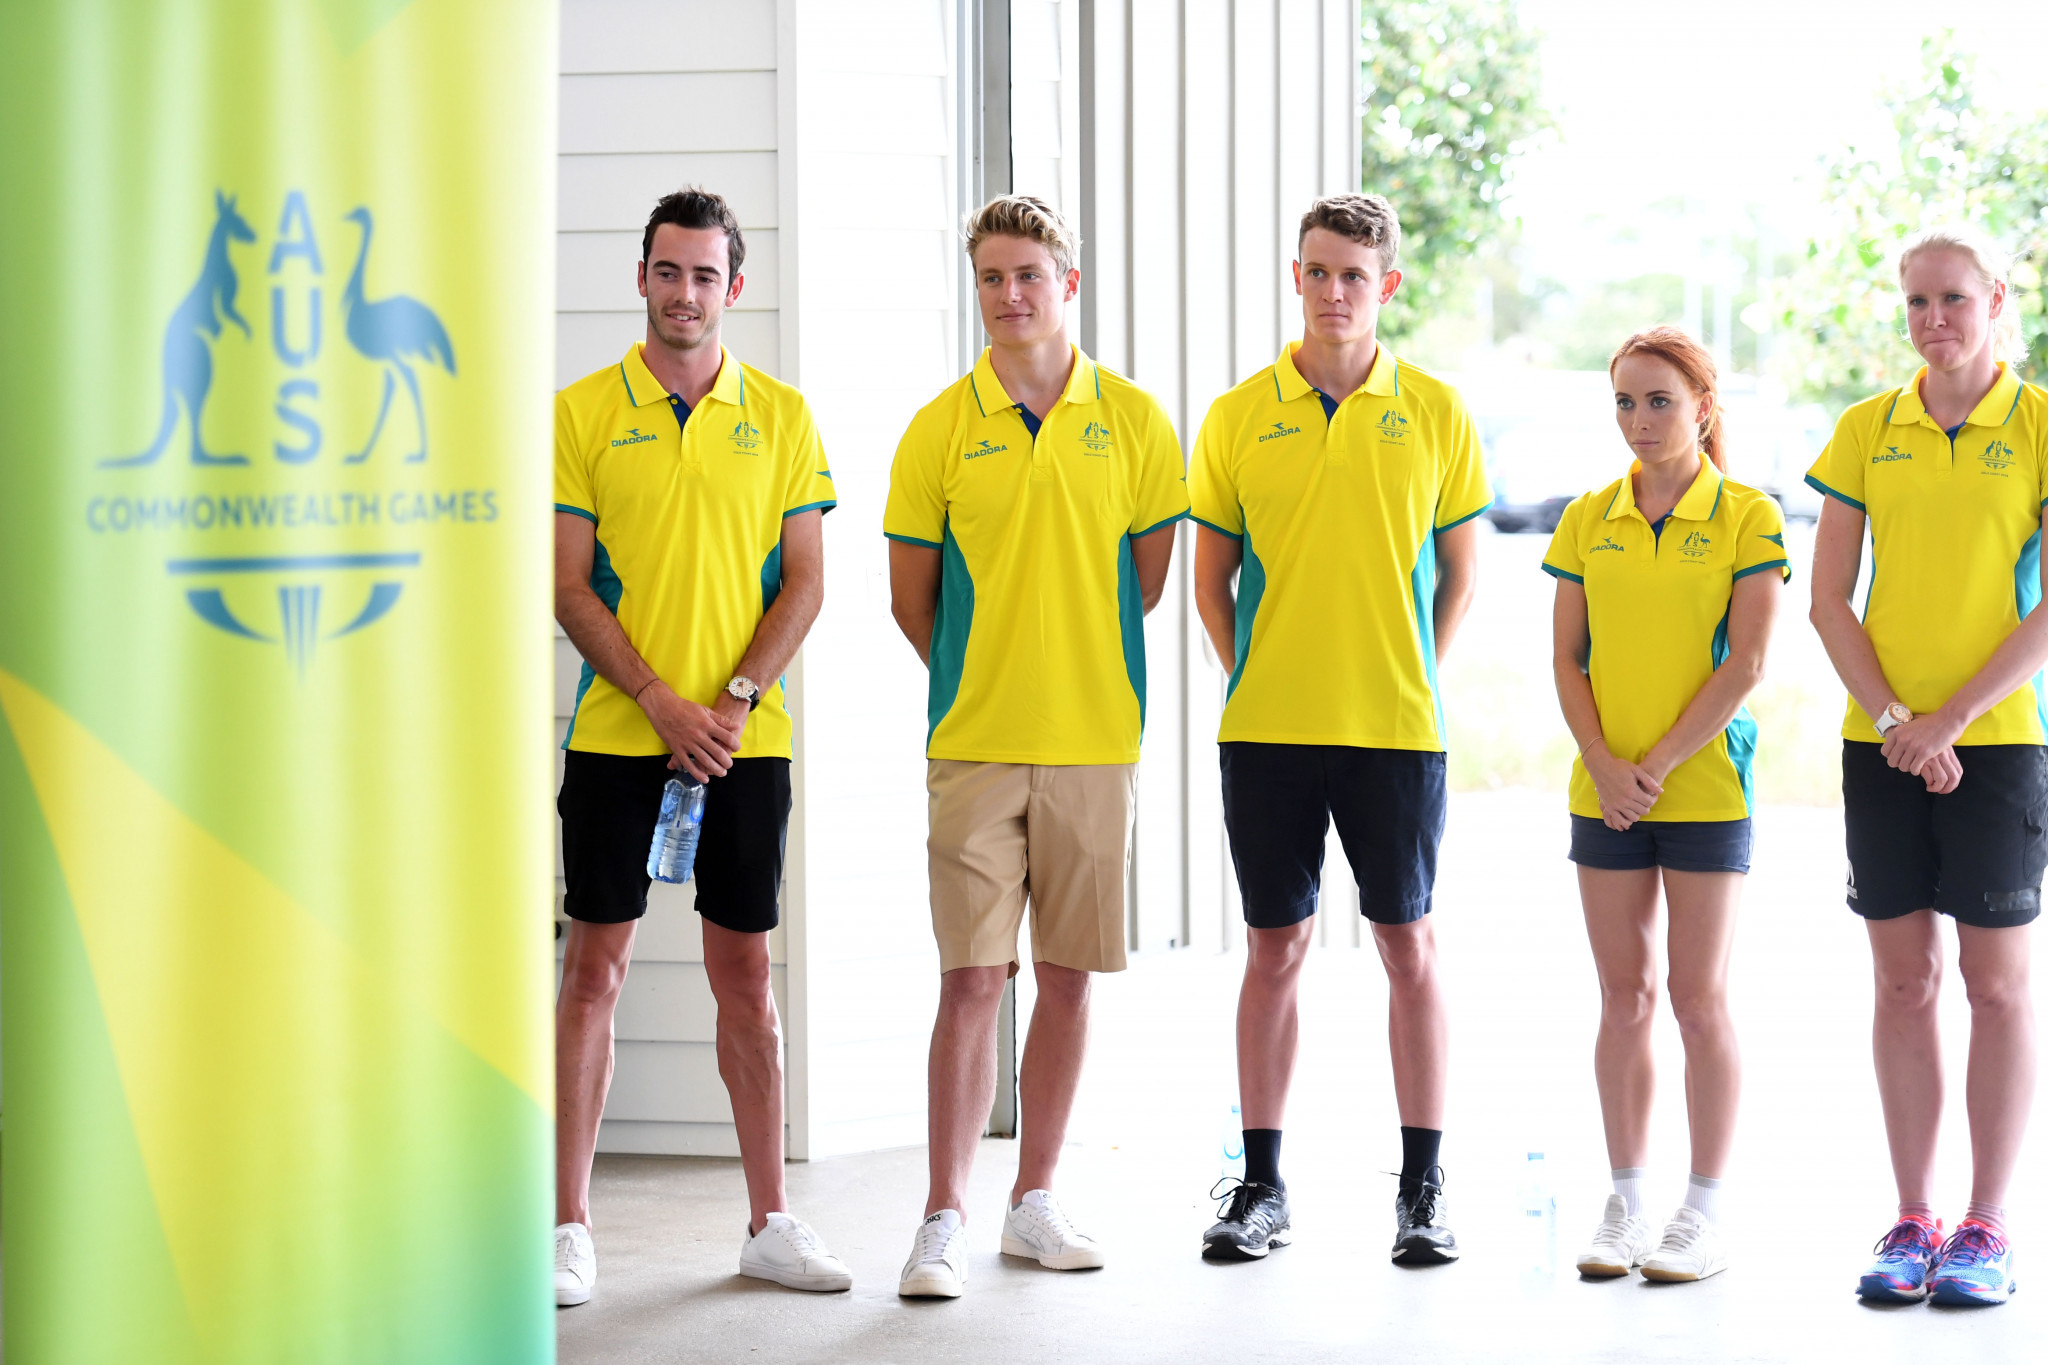 Triathletes named as Australia's first athletes for Gold Coast 2018